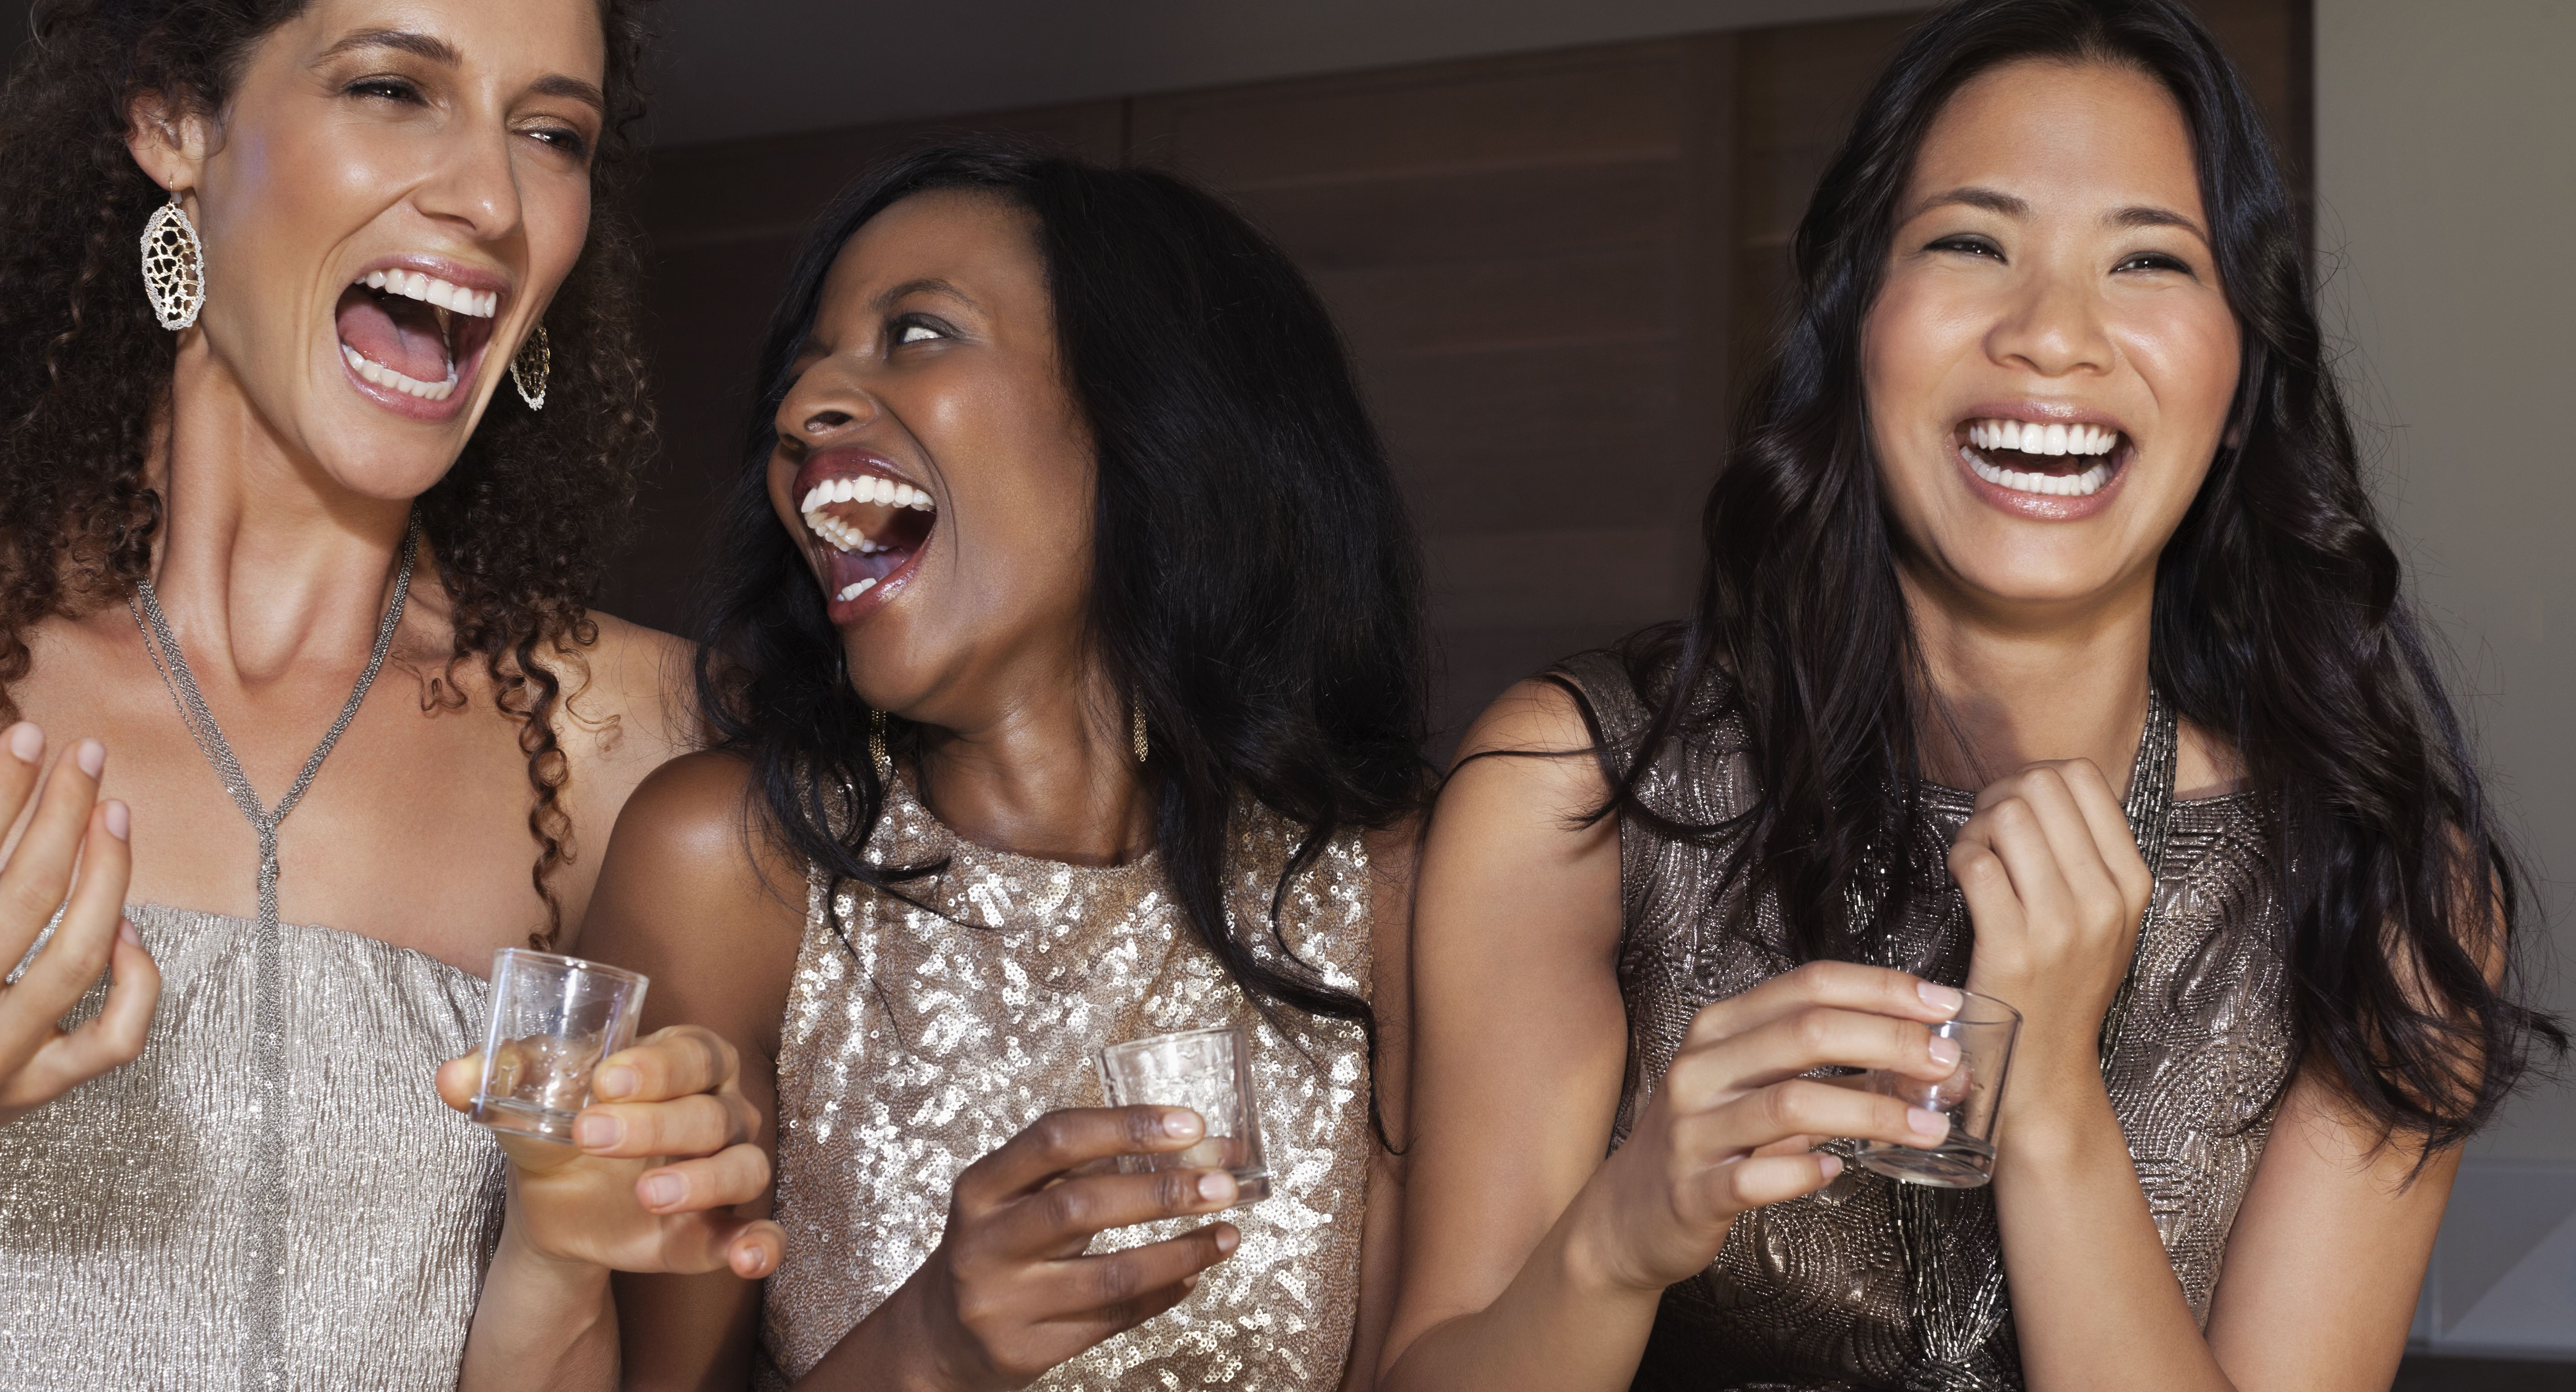 Women laughing together at party